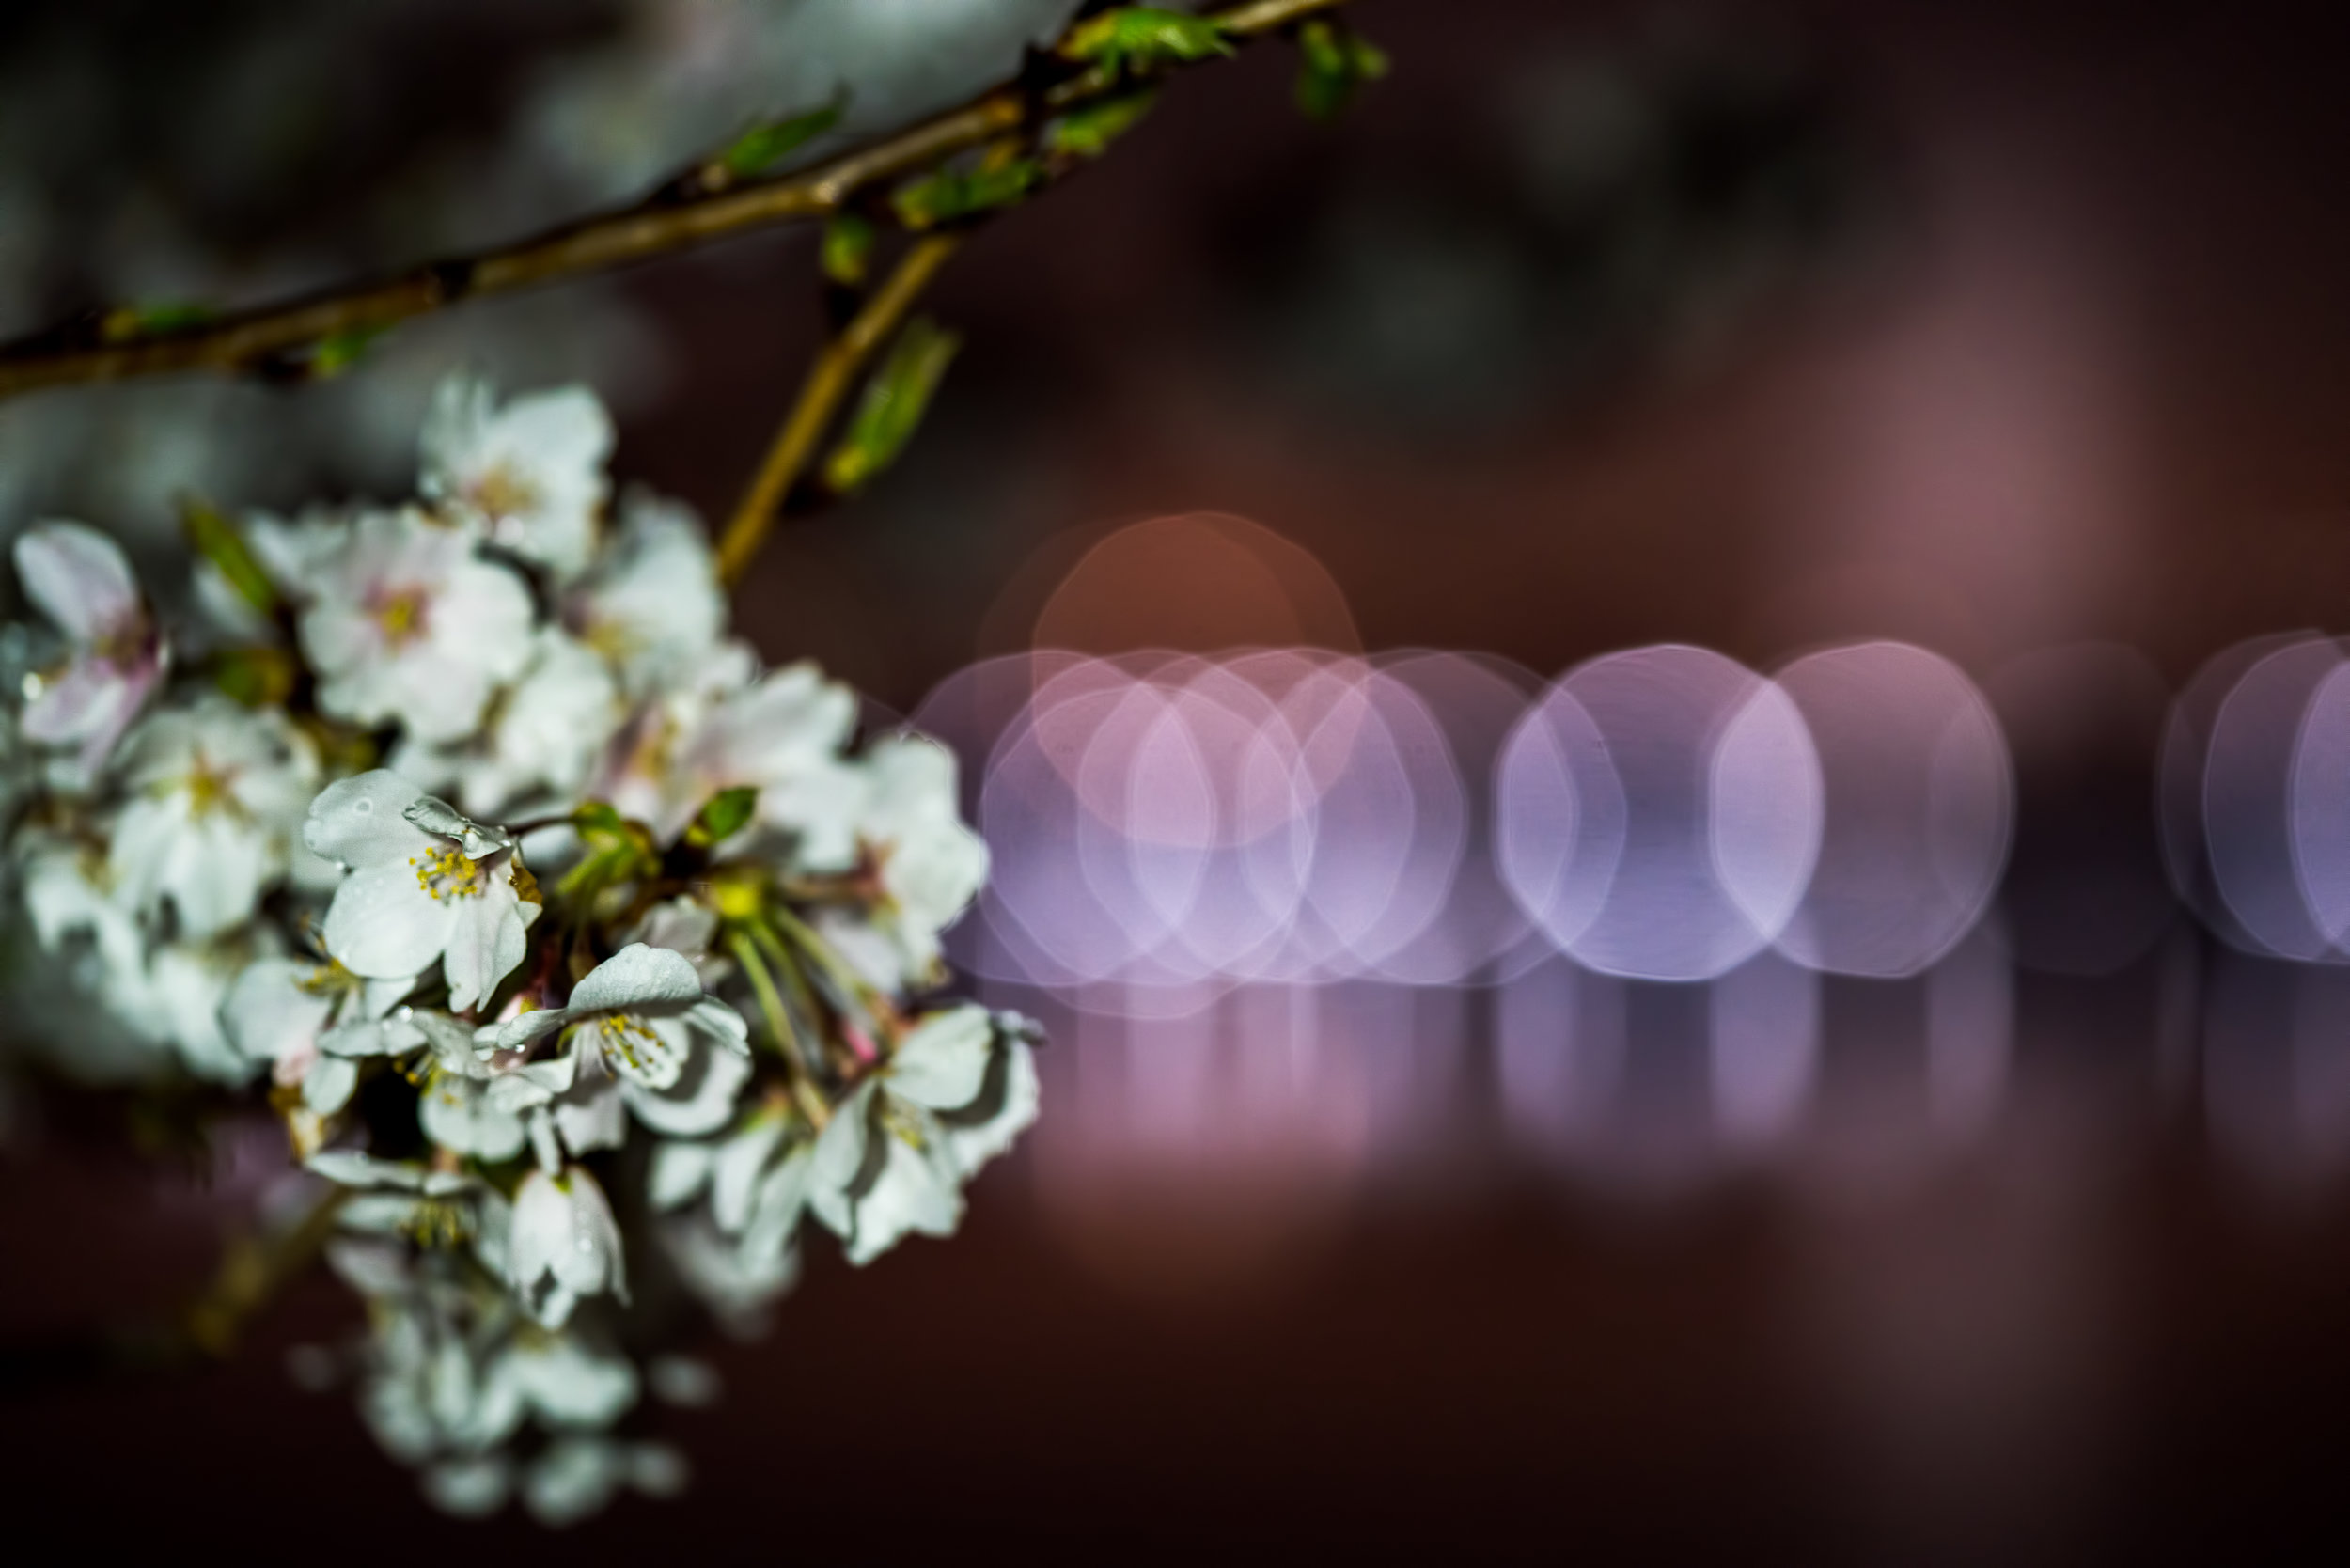 This one was a shot I had in my head with the Cherry Blossoms and the City/Car lights in the distance providing the Bokeh. #Sony A7RM2, F/2.8, 1/60th, ISO 1600